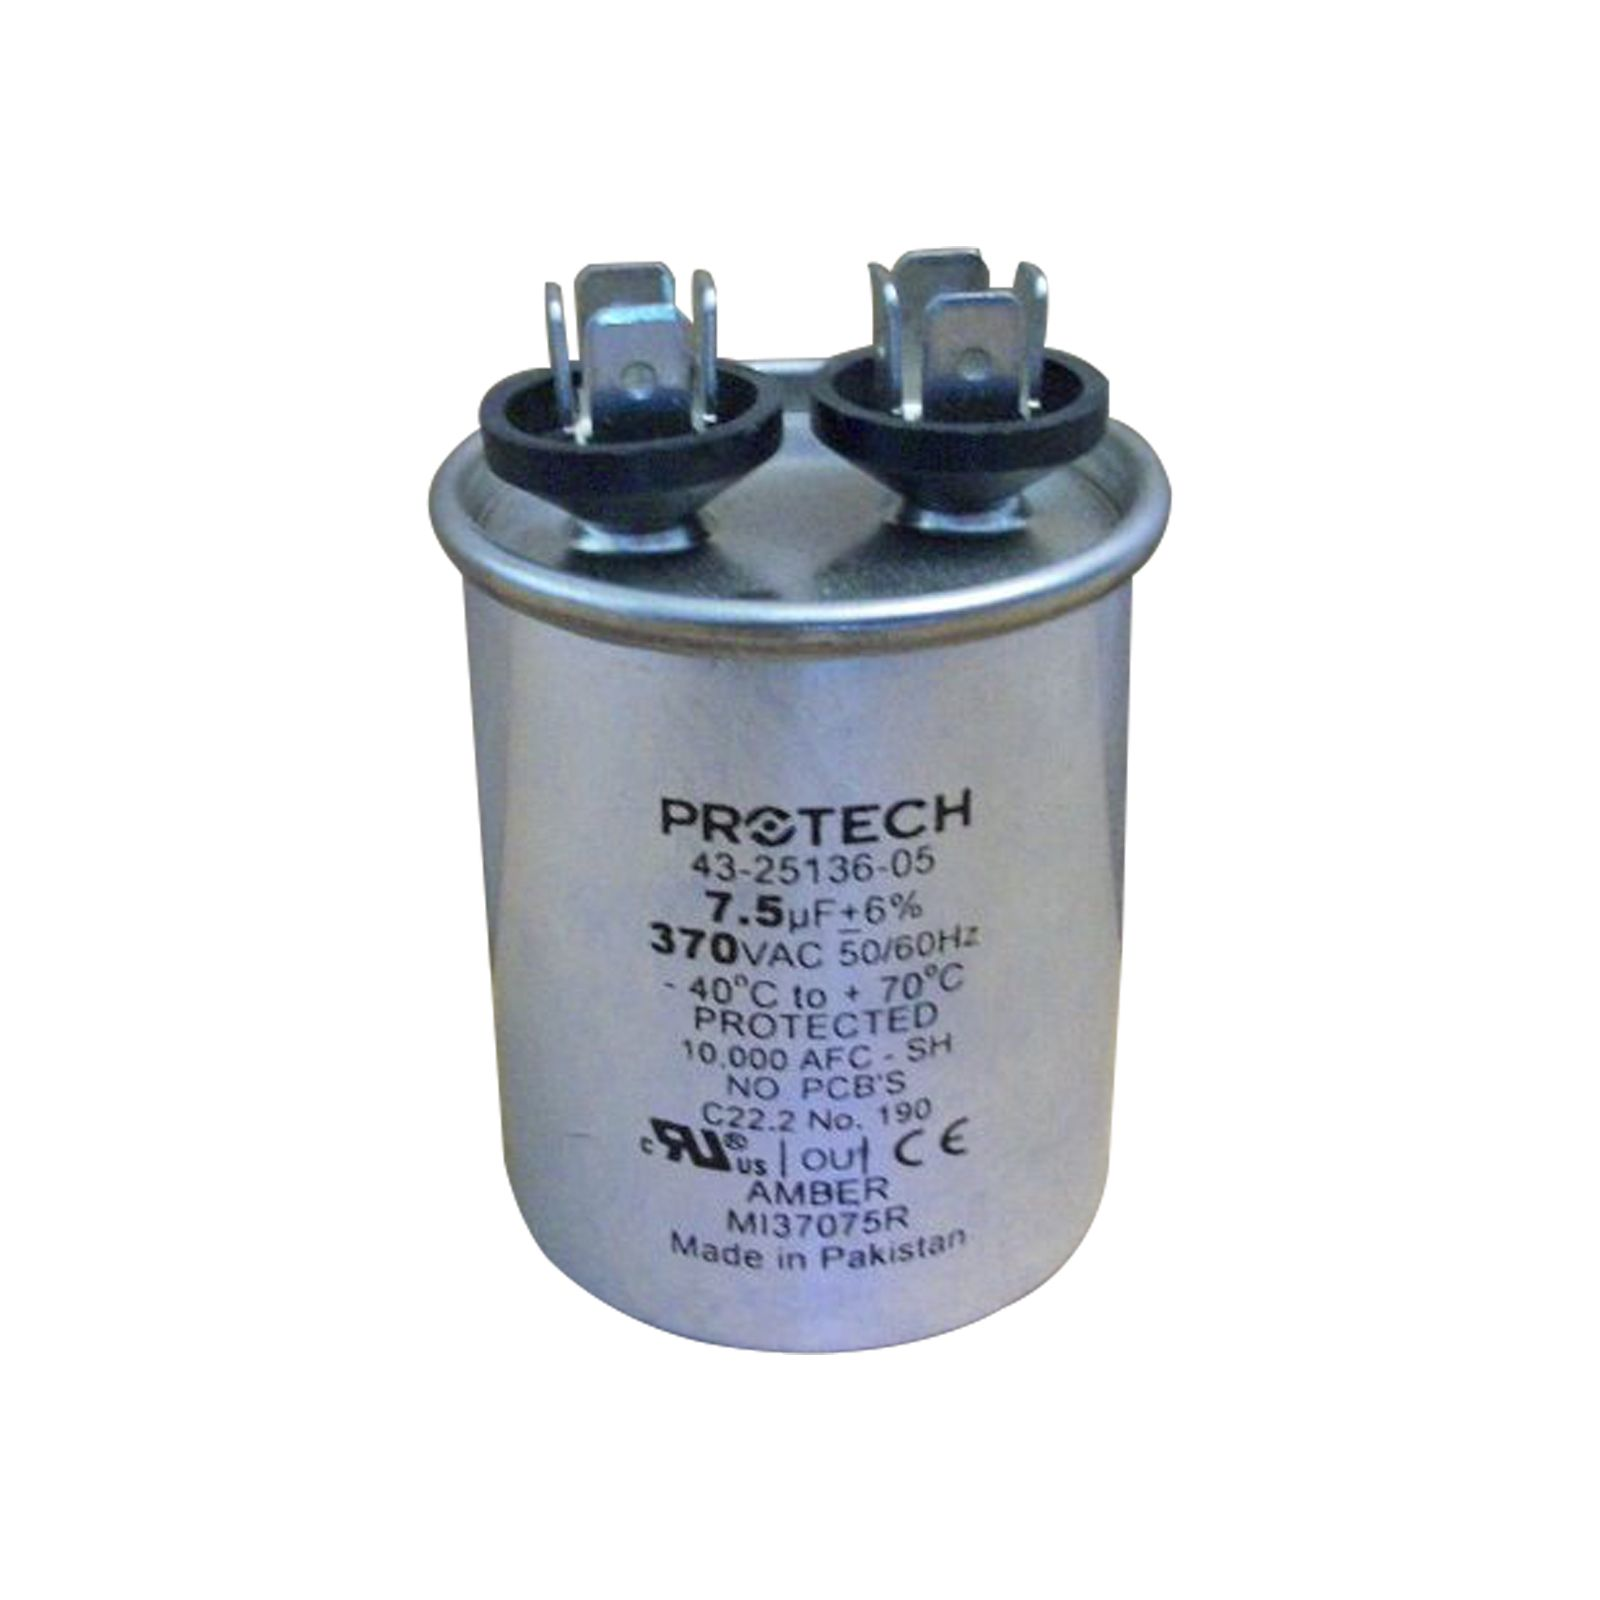 PROTECH 43-25136-05 - Capacitor - 7.5/370 Single Round